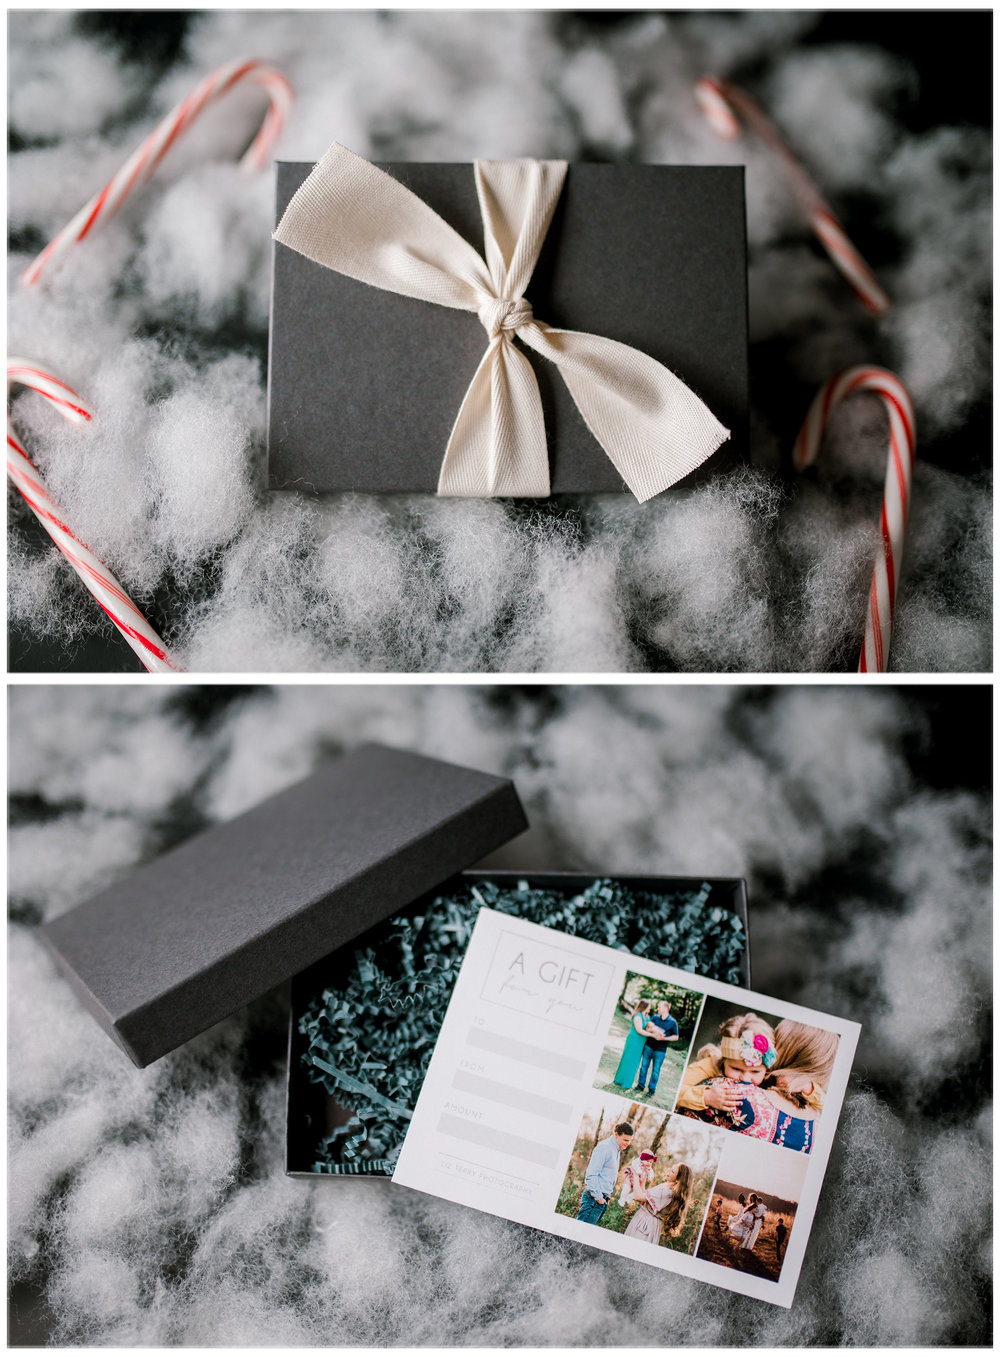 liz-terry-photography-gift-card